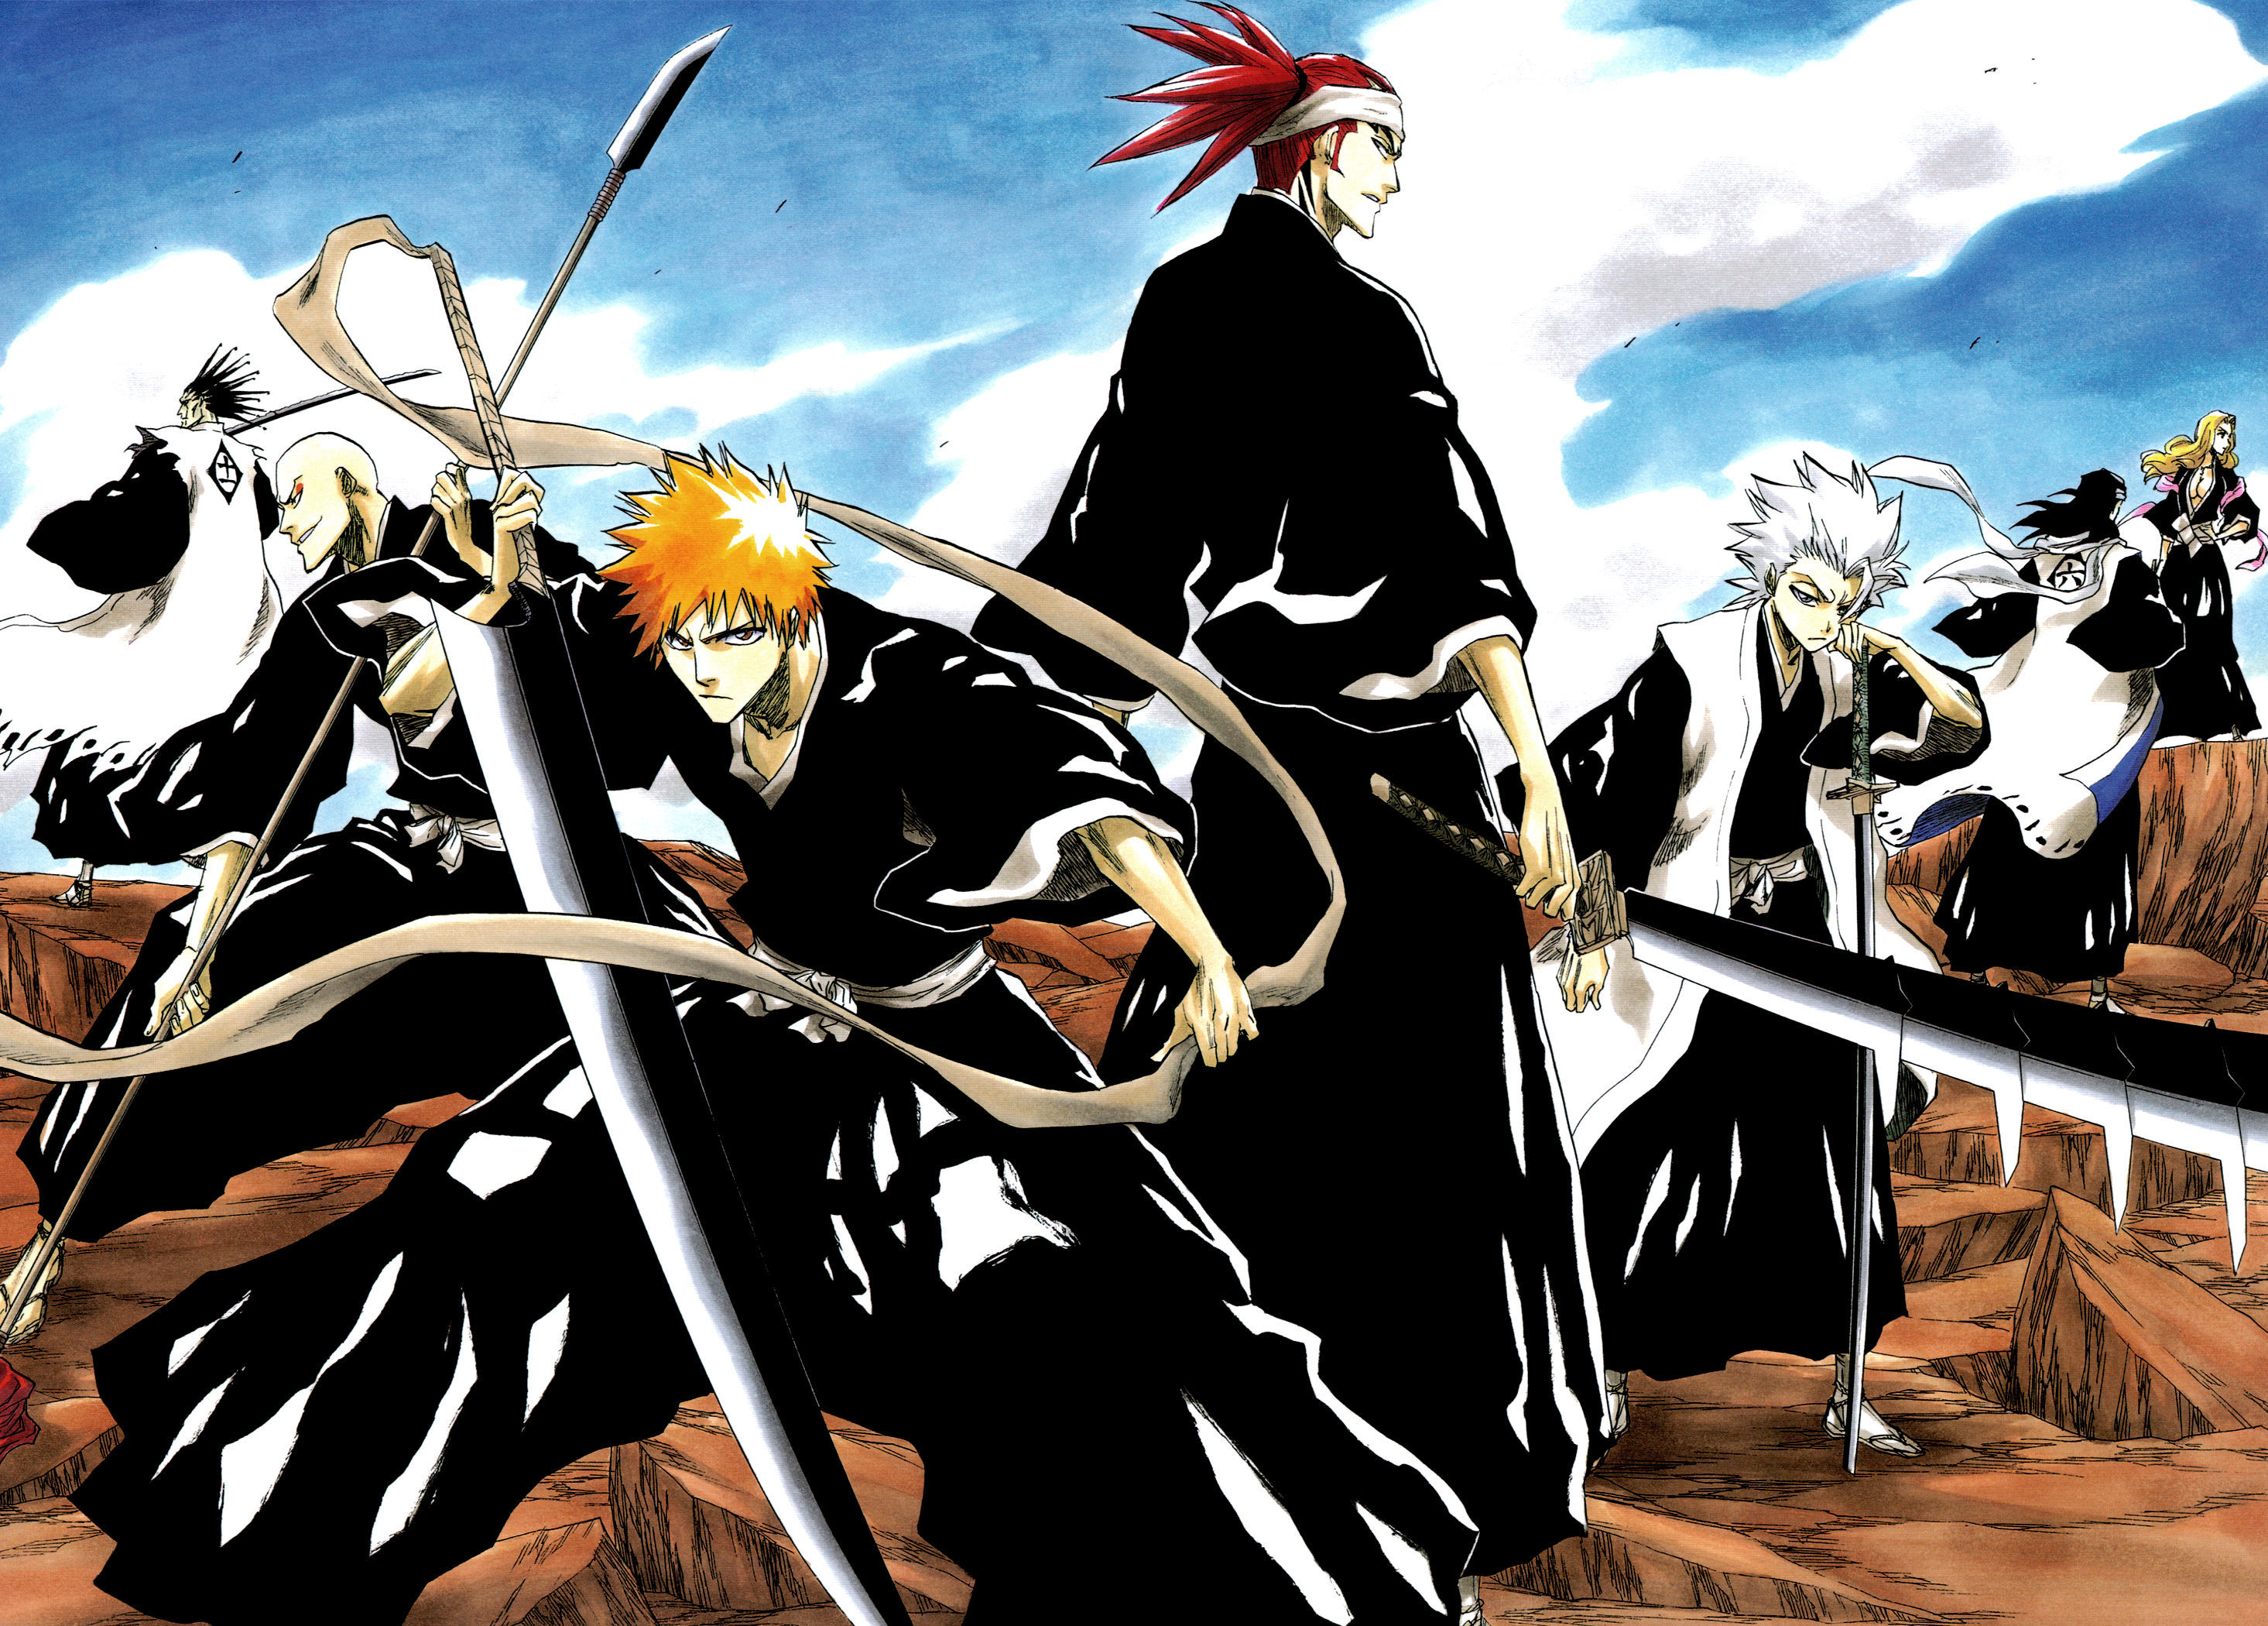 Anime Characters From Bleach : Bleach characters in normal or shinigami clothing poll